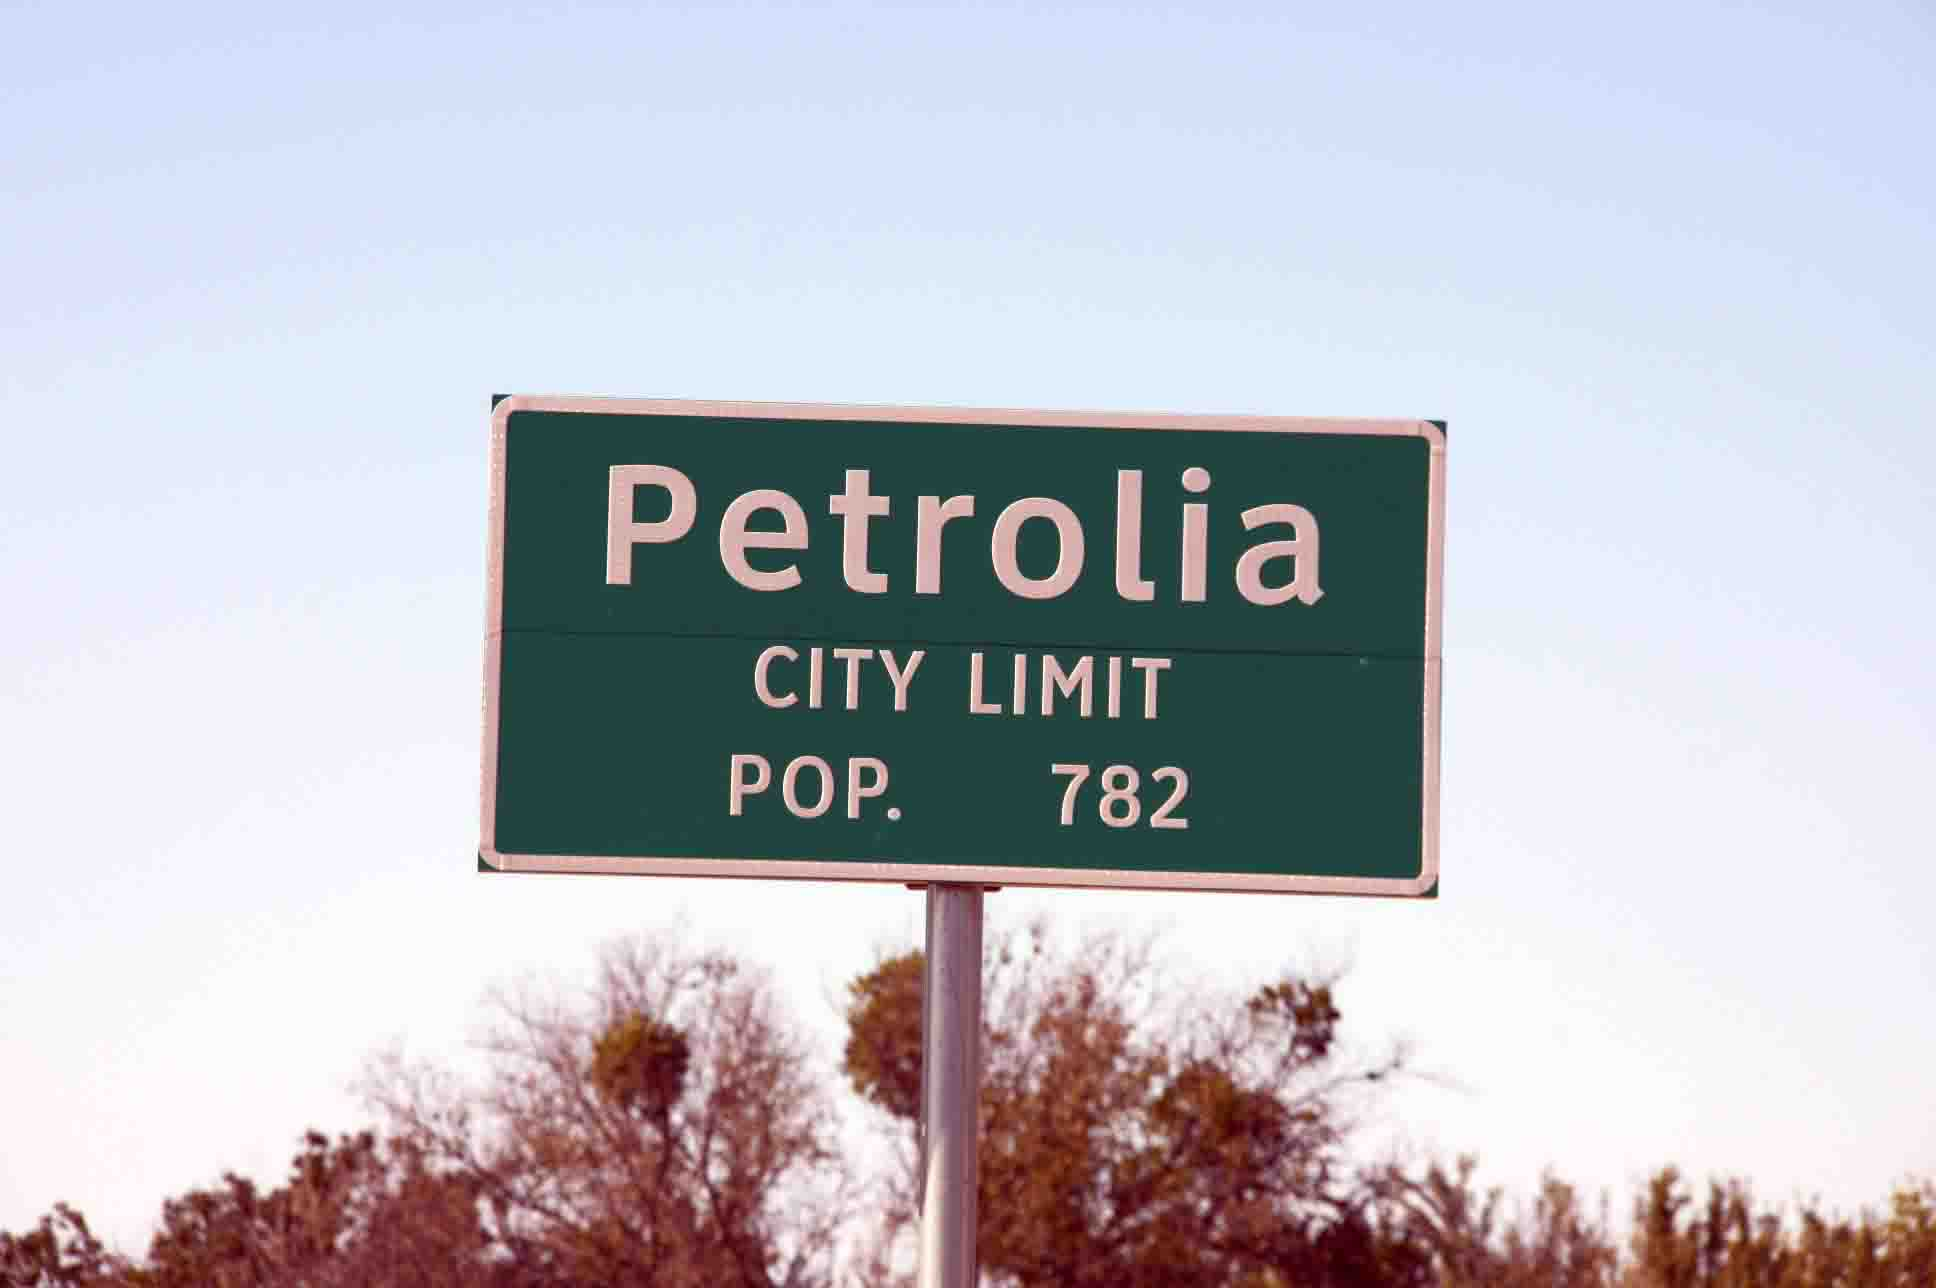 Petrolia City Limits